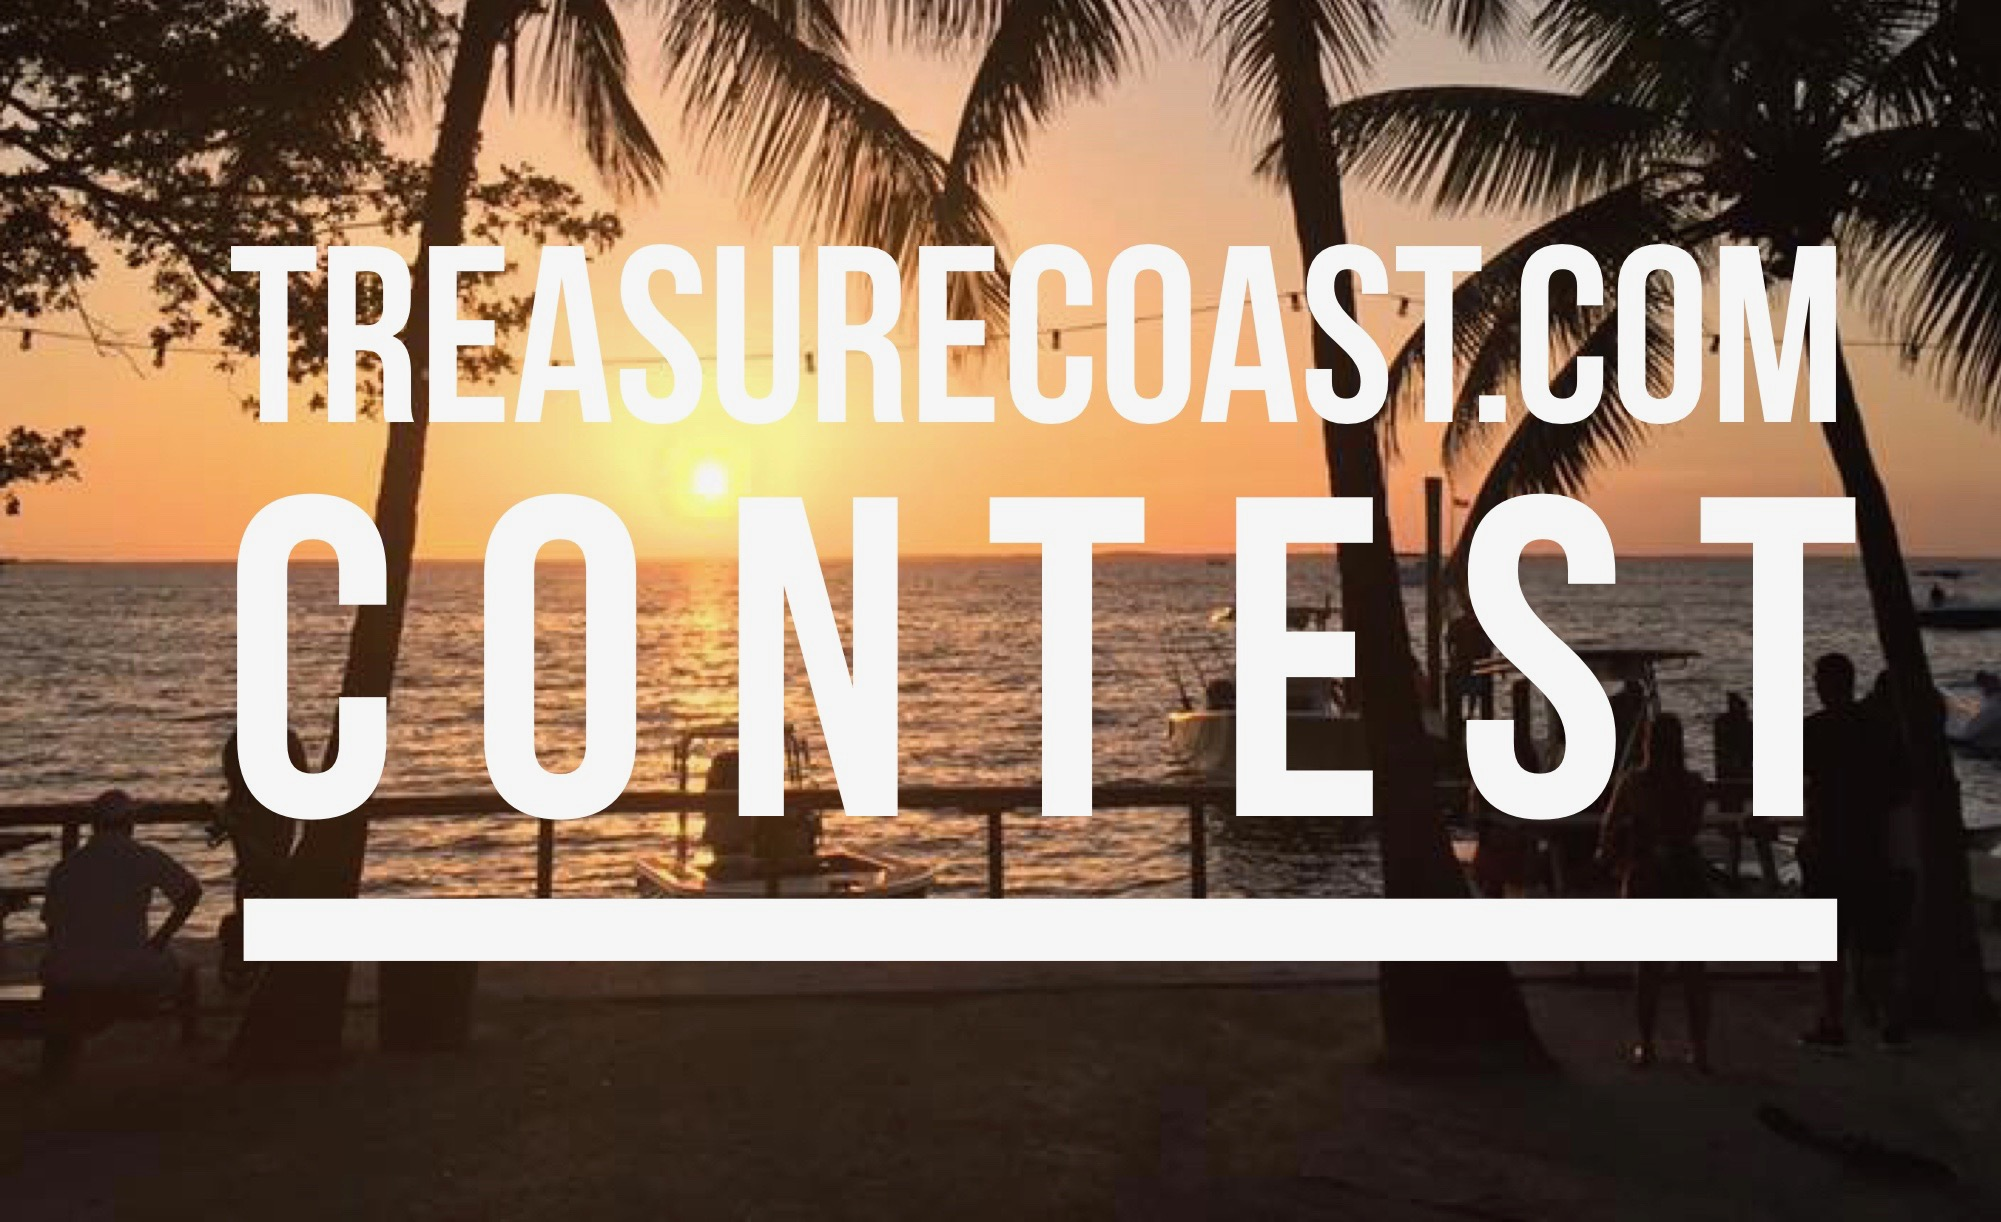 Treasurecoast.com Contest